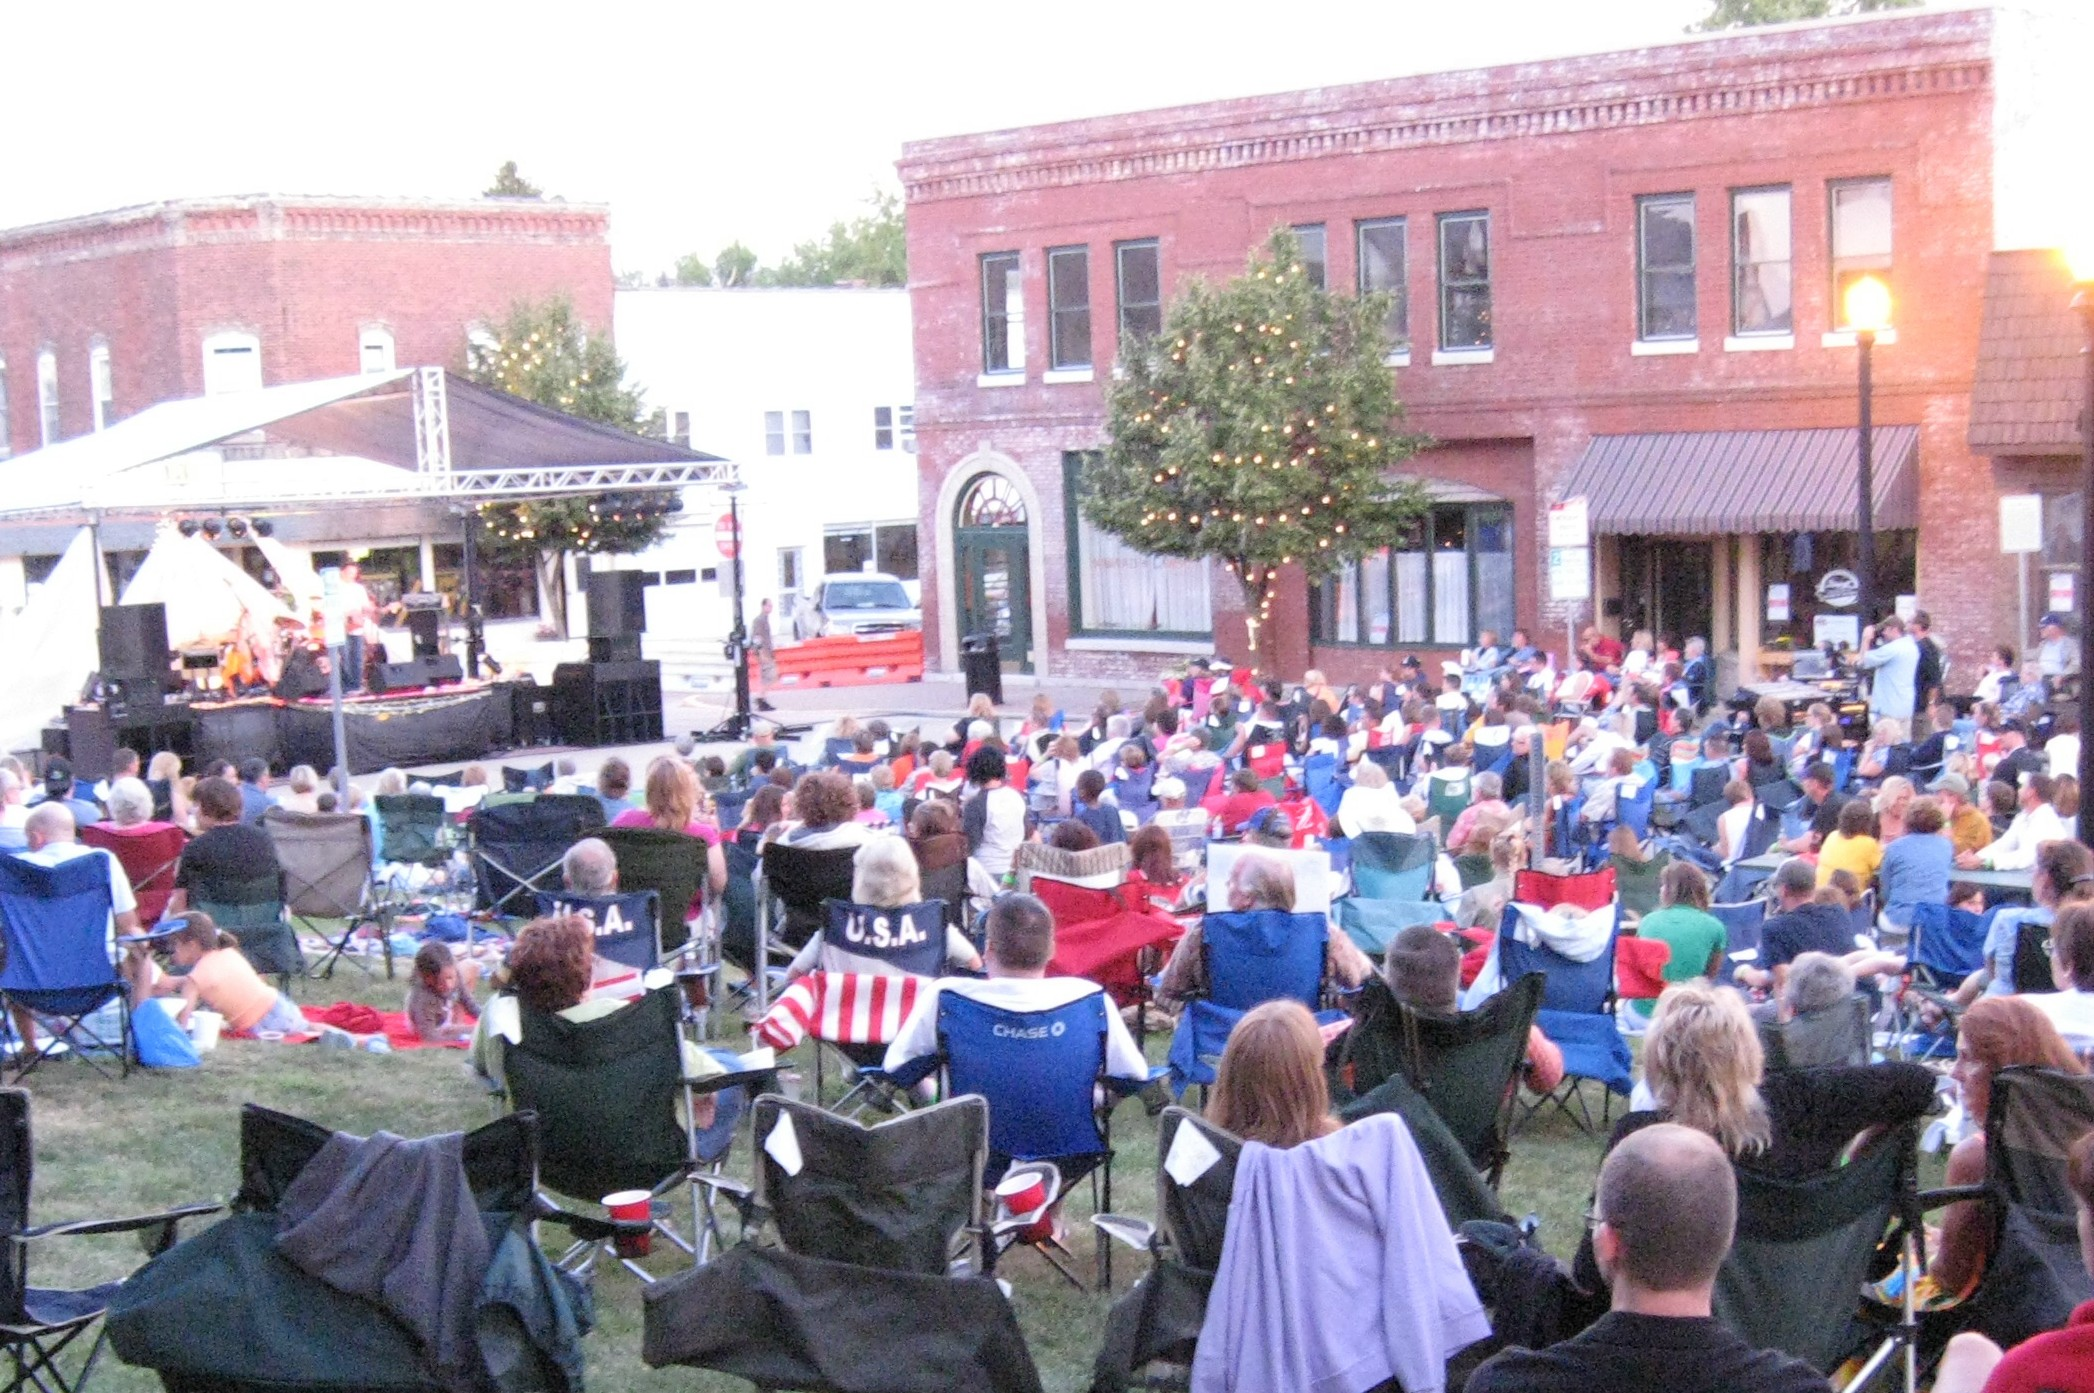 Enjoy live music in Danville during Summer Sounds on the Square on Sept. 19.